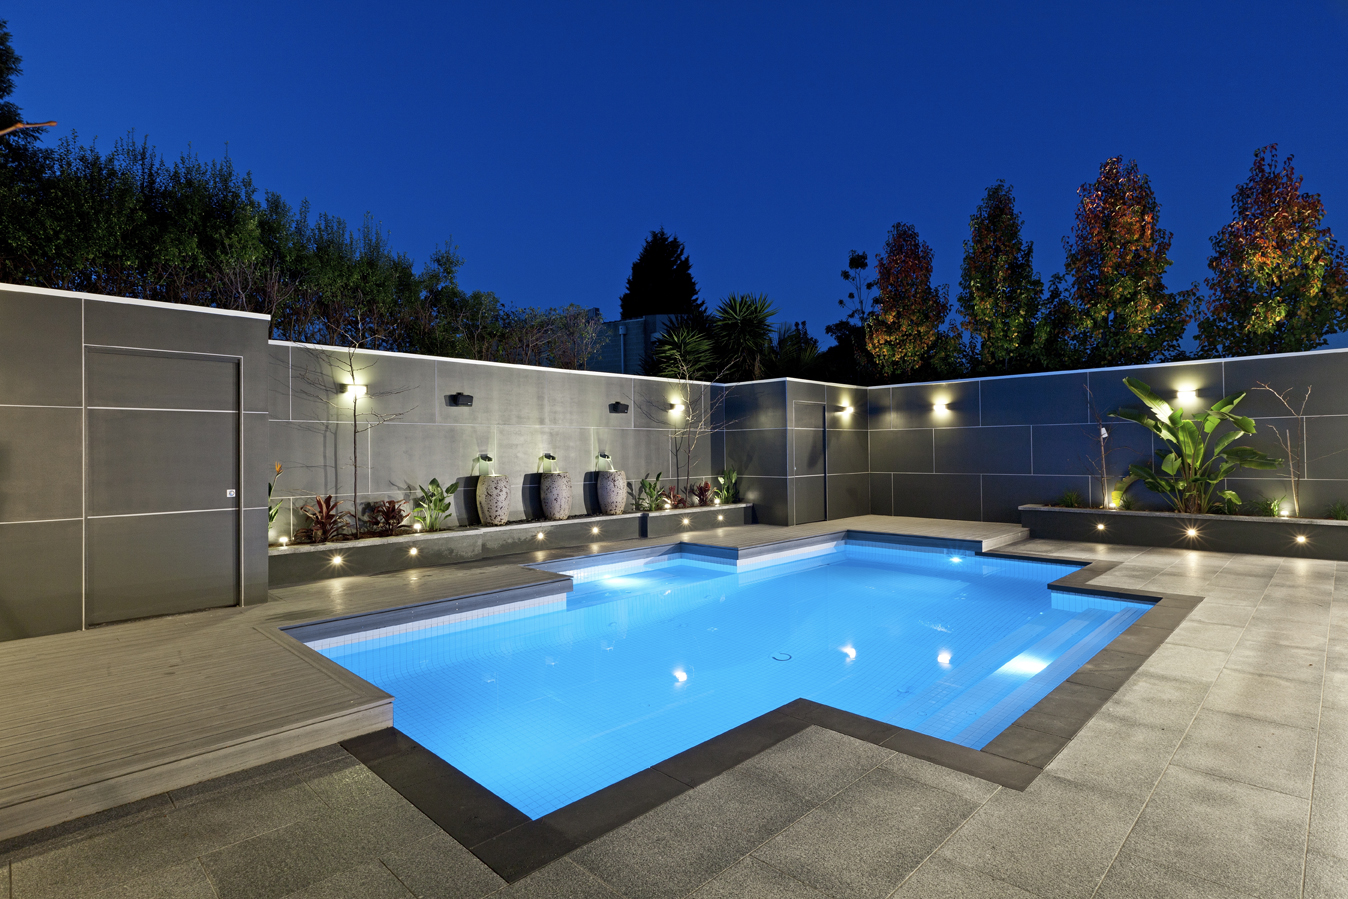 Backyard landscaping ideas swimming pool design for Swimming pools for homes